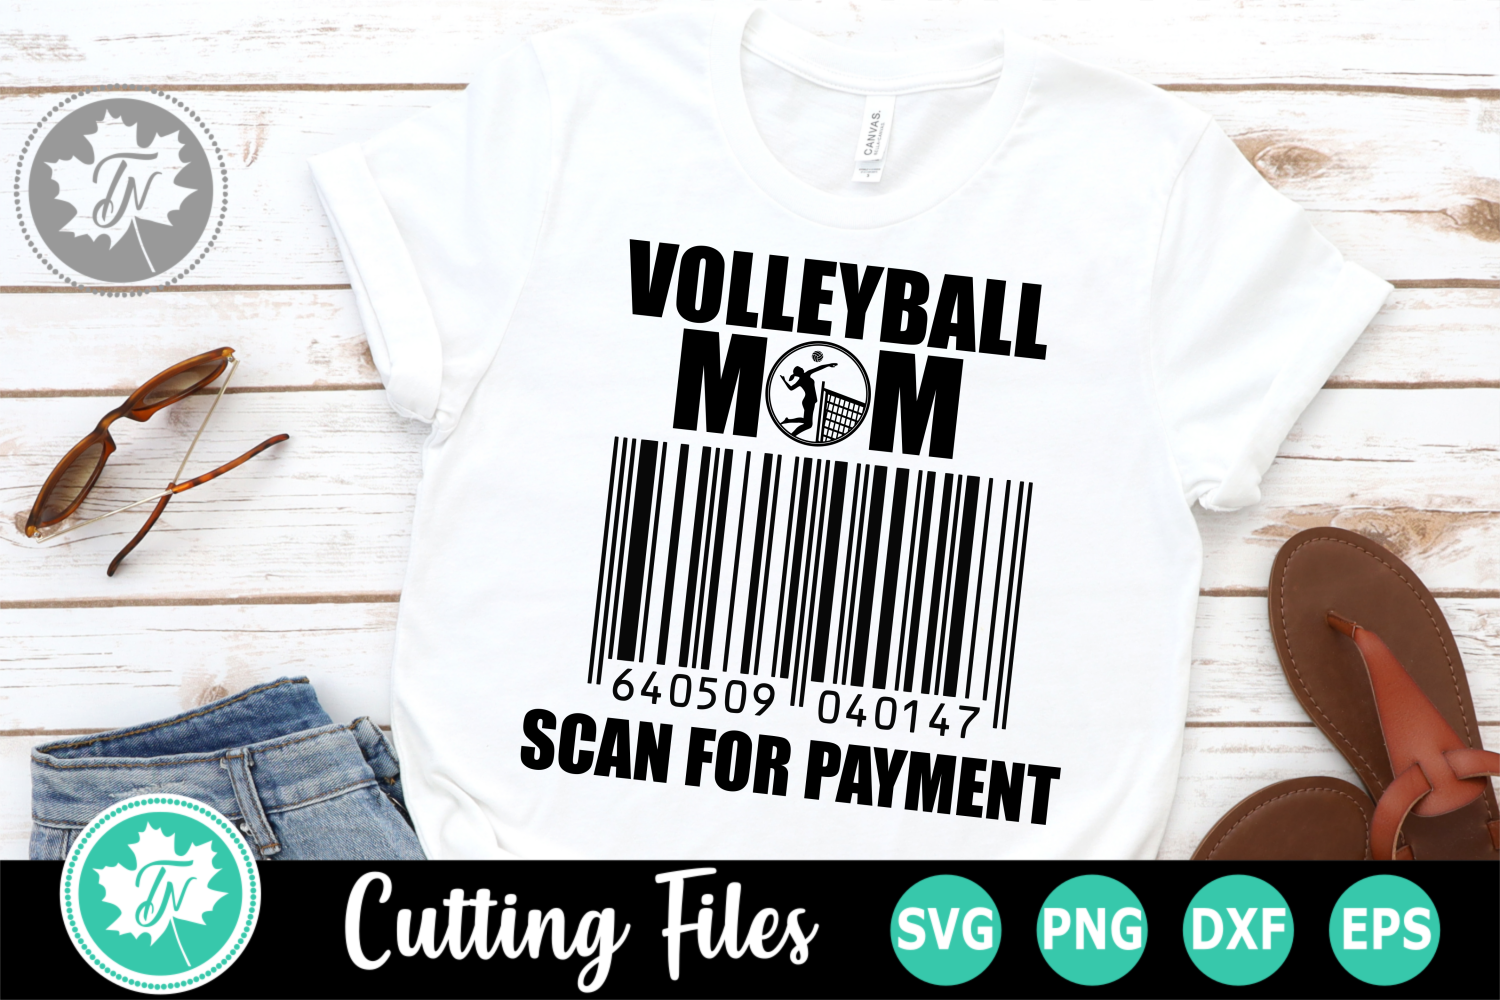 Volleyball Mom Scan for Payment - A Sports SVG Cut File example image 1